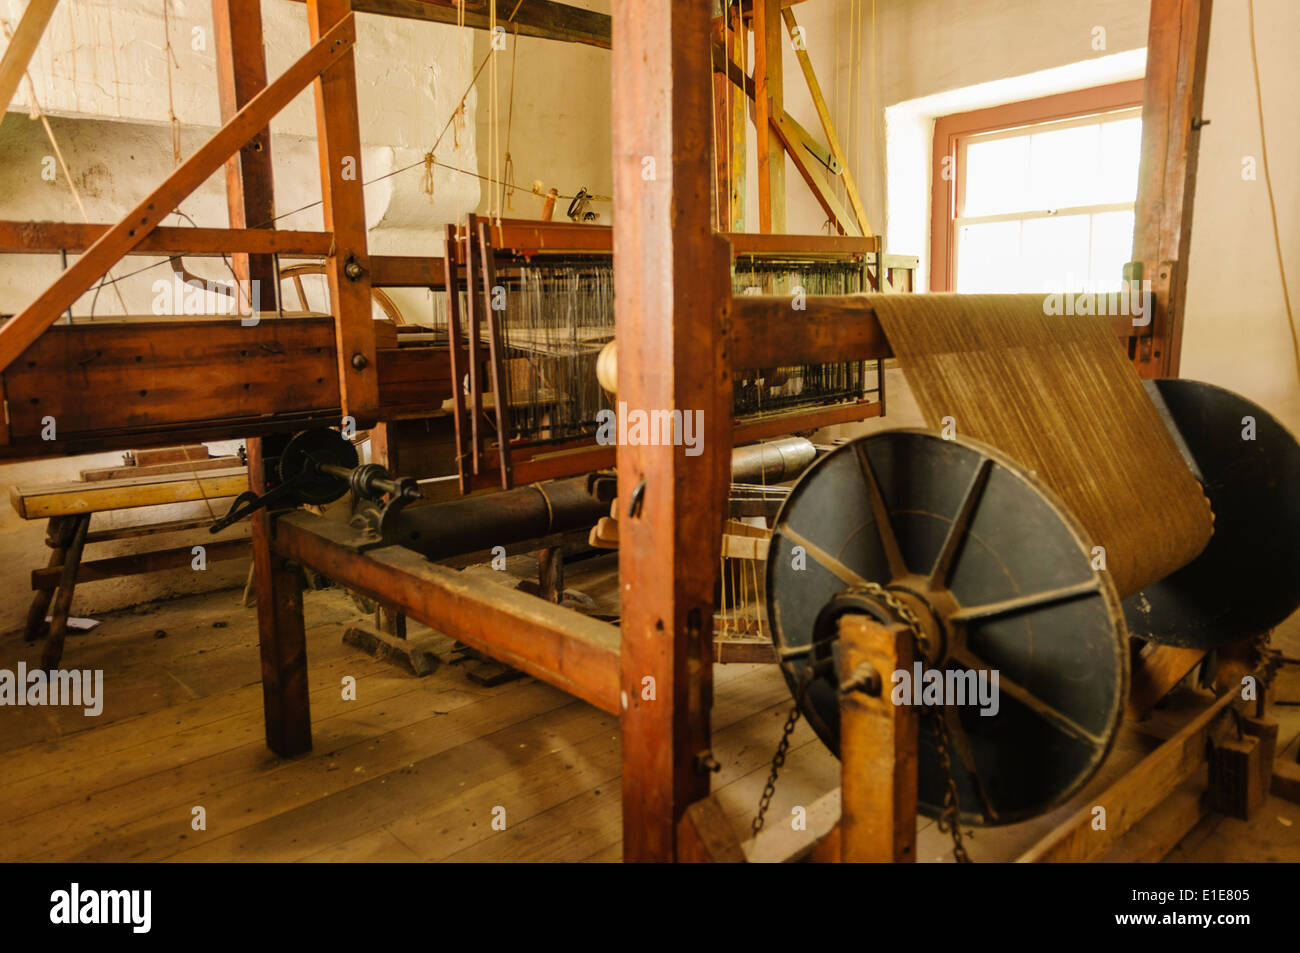 A traditional weaving loom from the 19th Century. - Stock Image